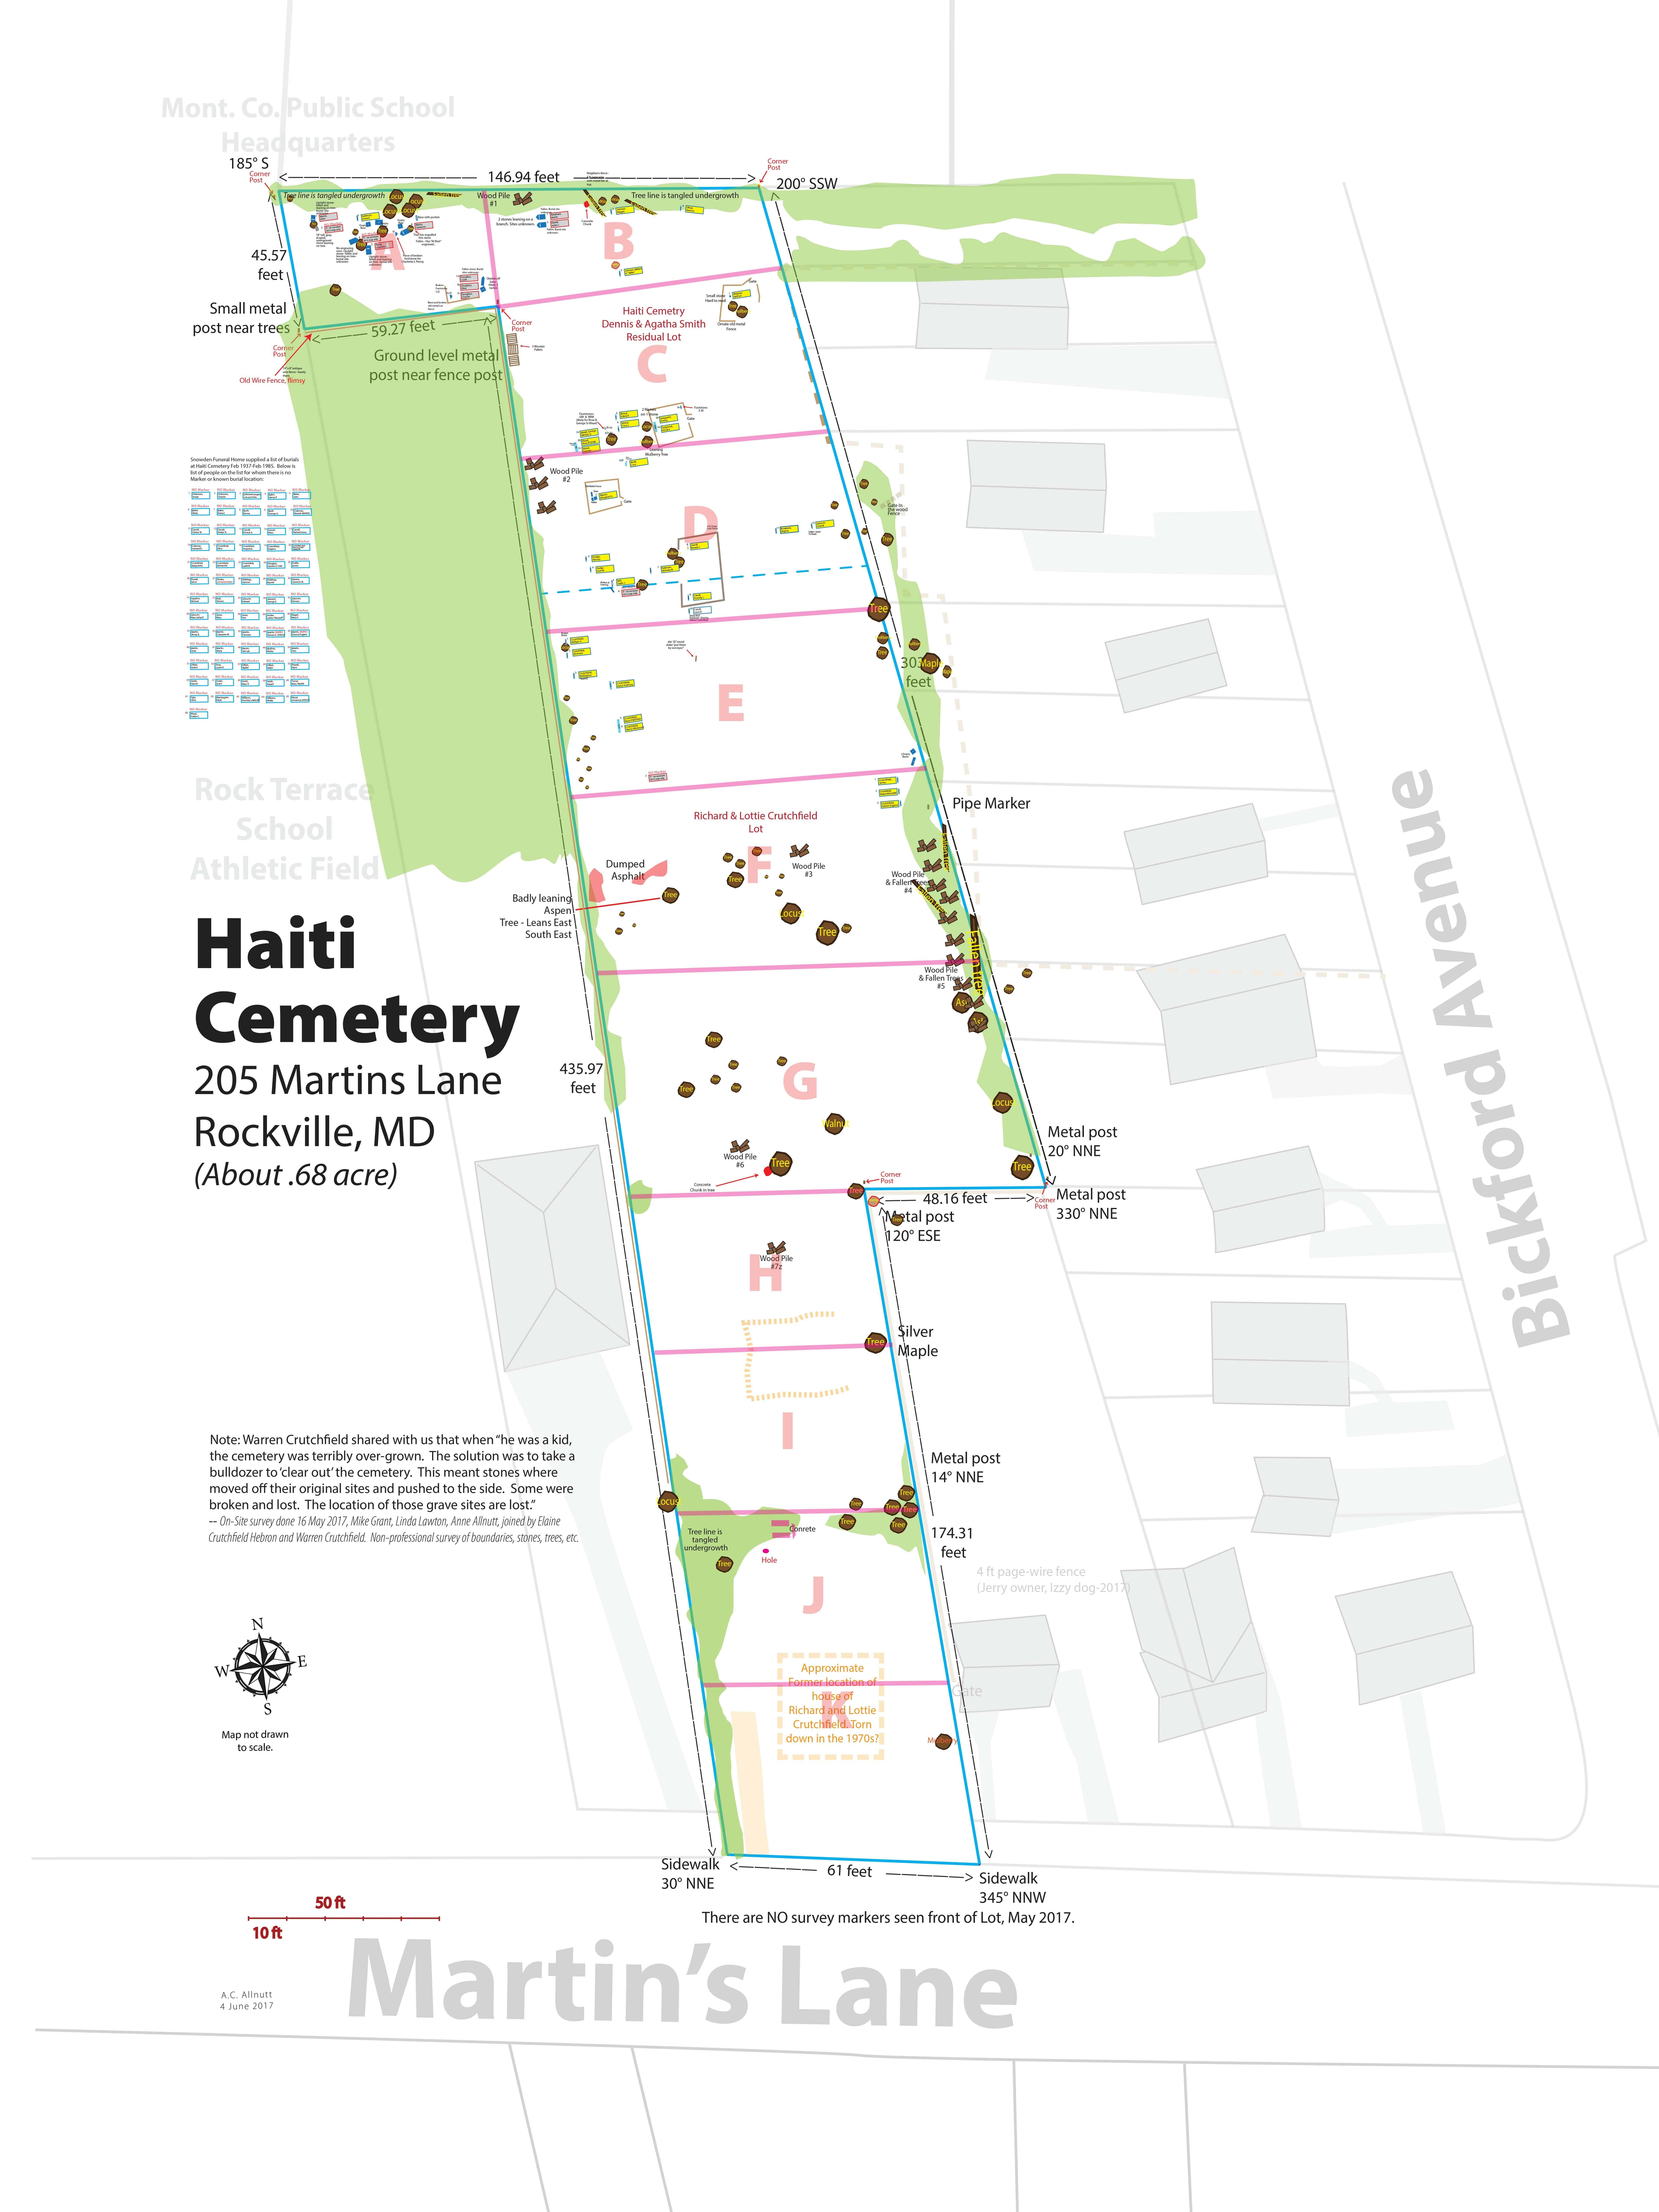 Haiti Cemetery Map